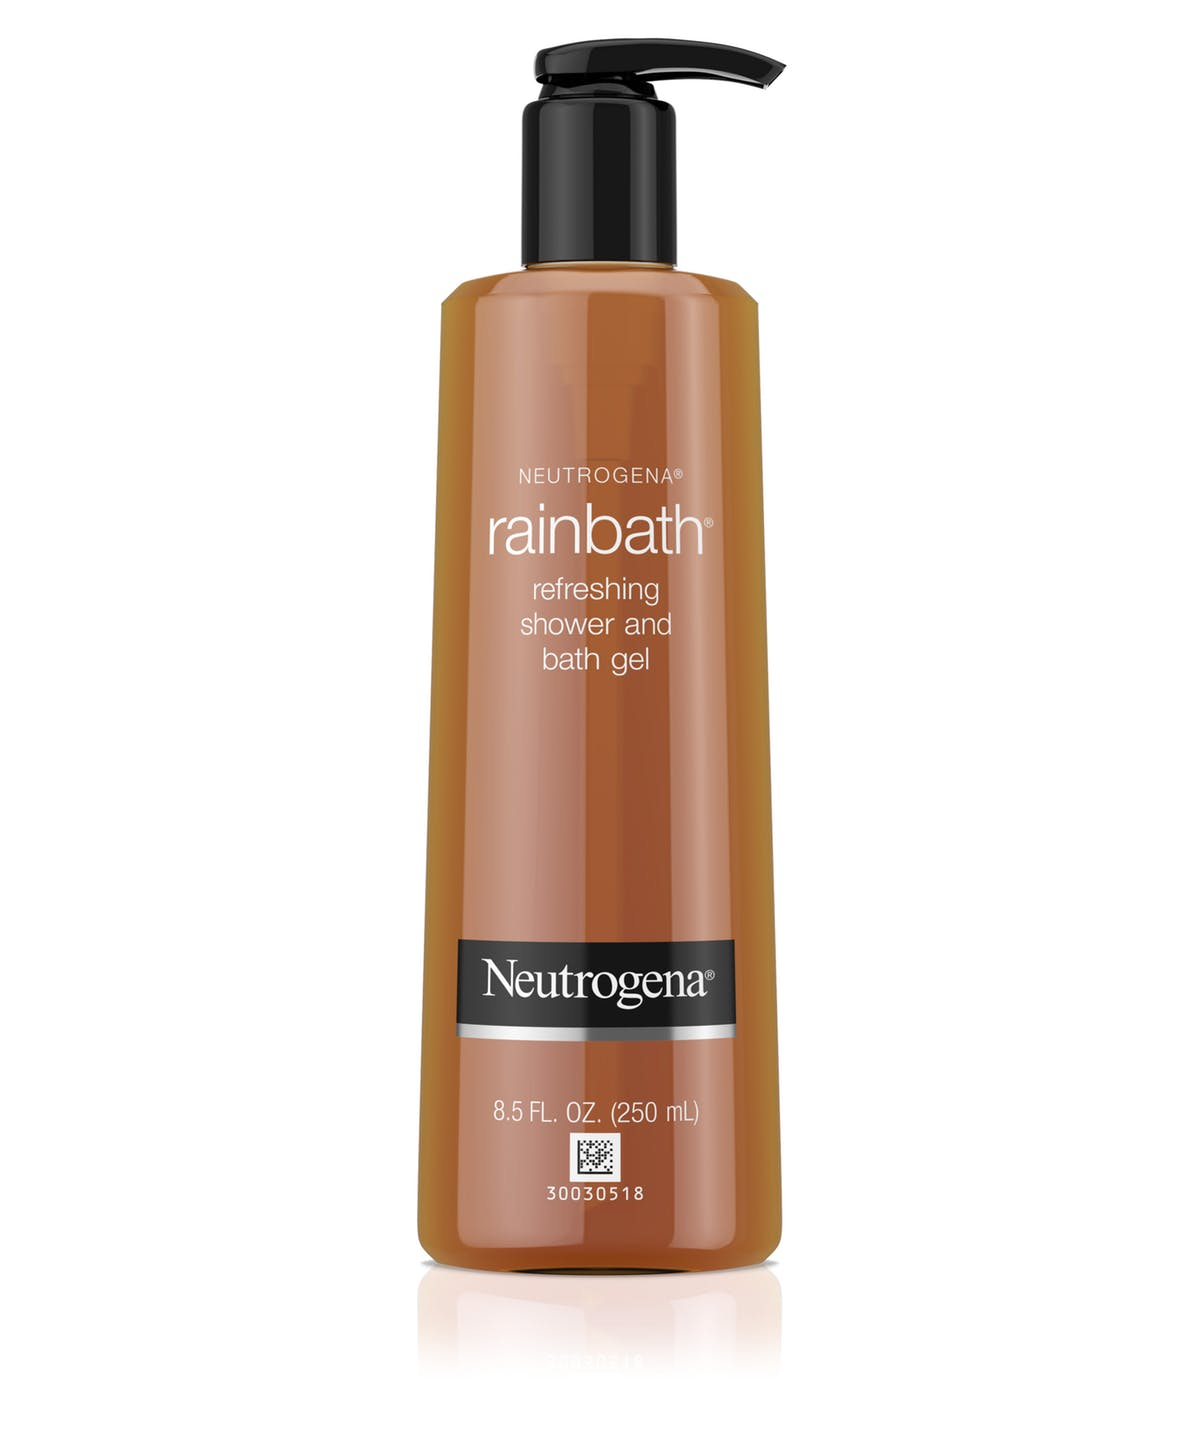 rainbath shower gel